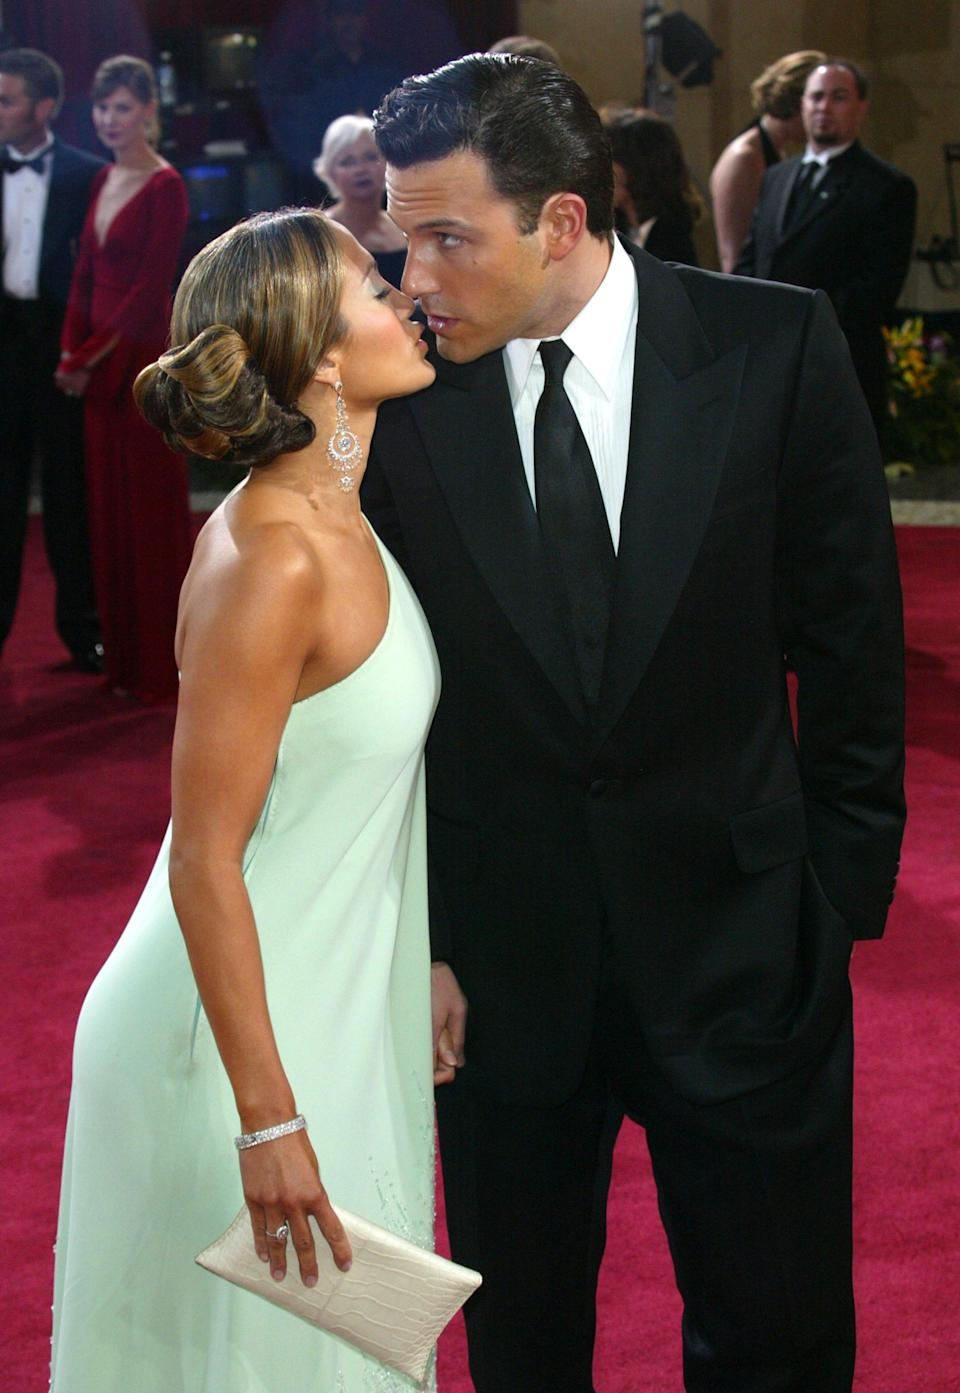 Jennifer Lopez and Ben Affleck kissing on the red carpet of the 2003 Oscars.